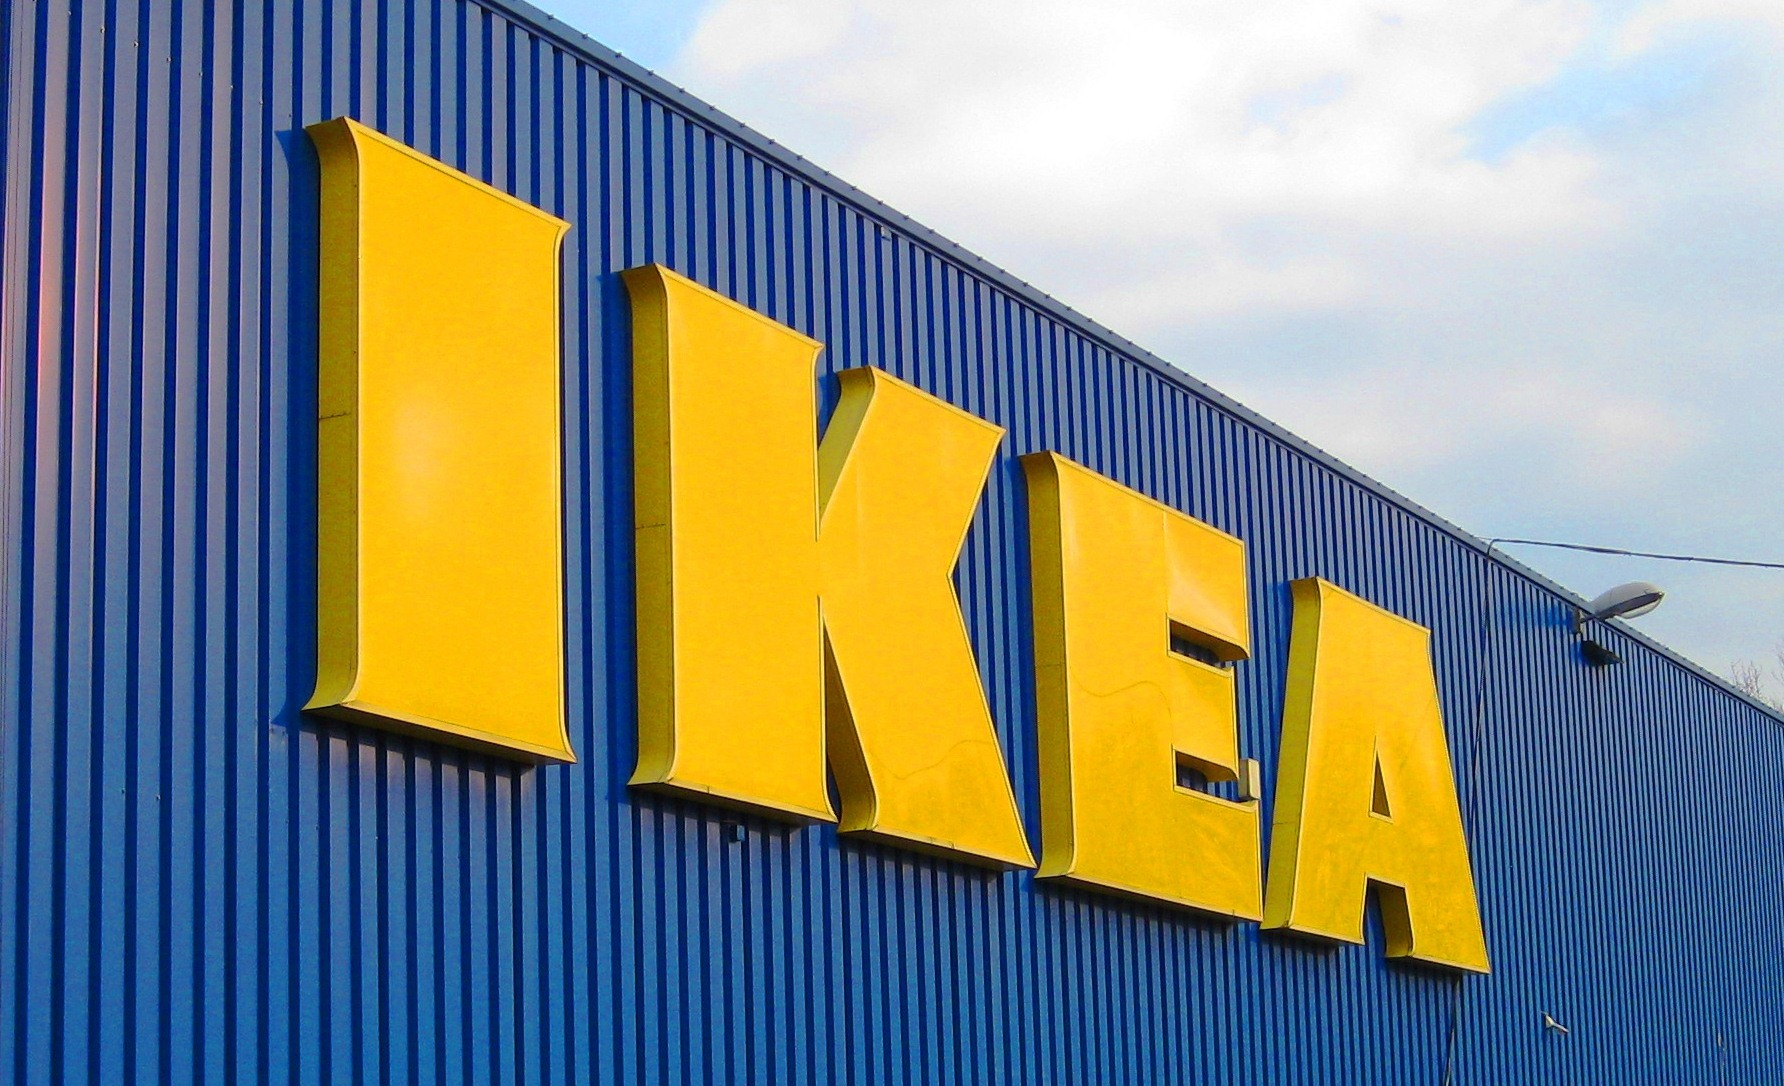 weaknesses of ikea For the ikea 2020 strategy, a simpler supply chain and lower costs are needed   also include a section presenting advantages and disadvantages with.